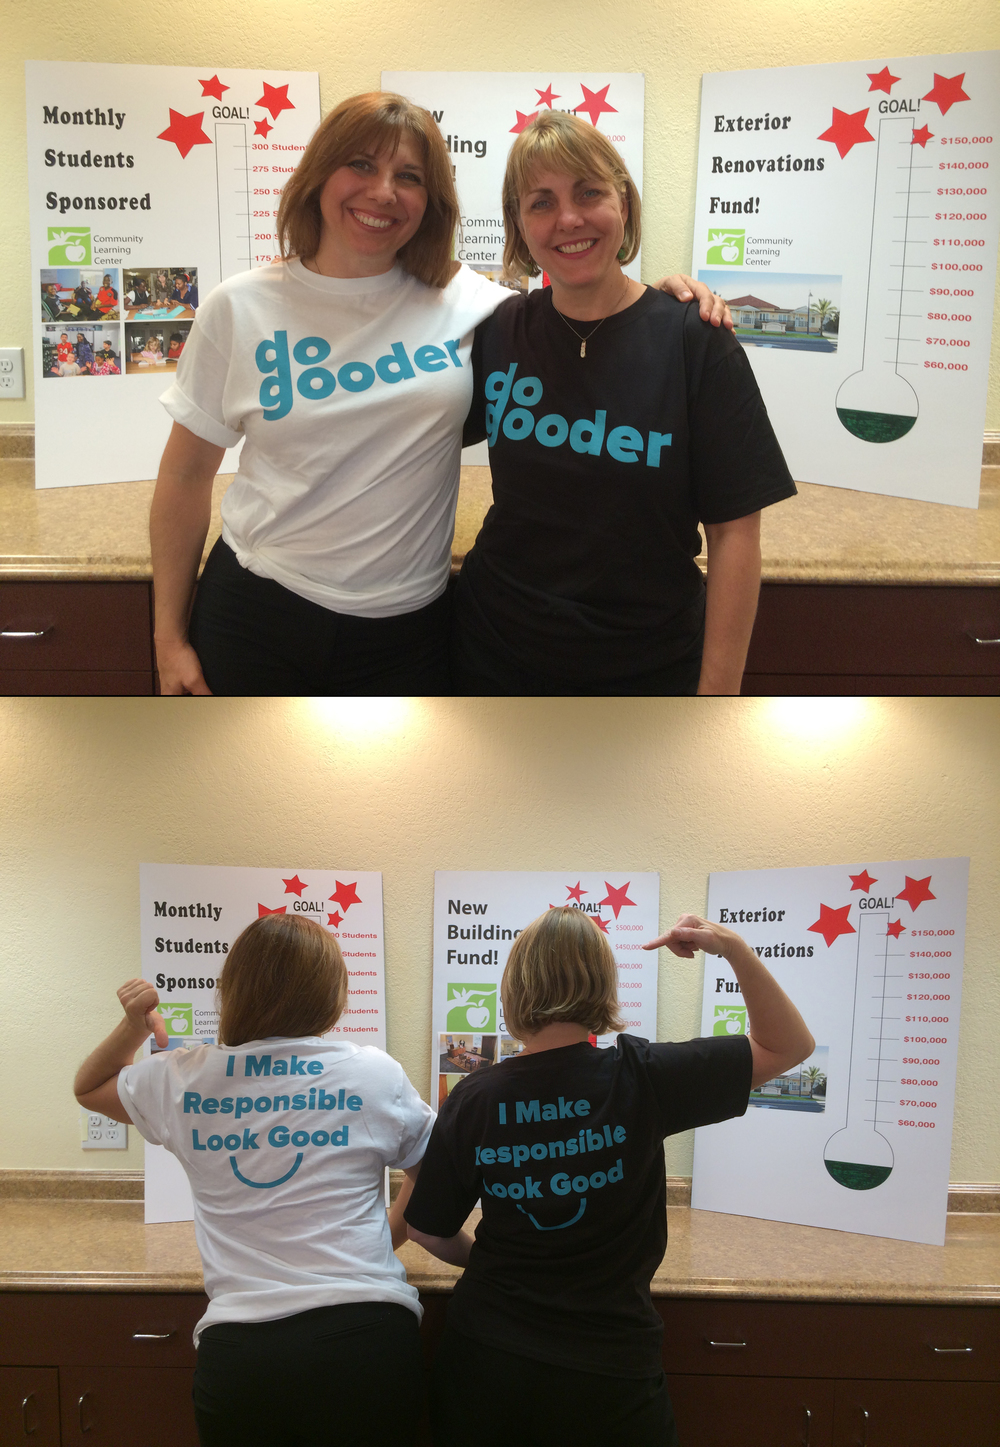 Lynn Posyton and Holly Haggerty rocking their shirts at the Community Learning Center!